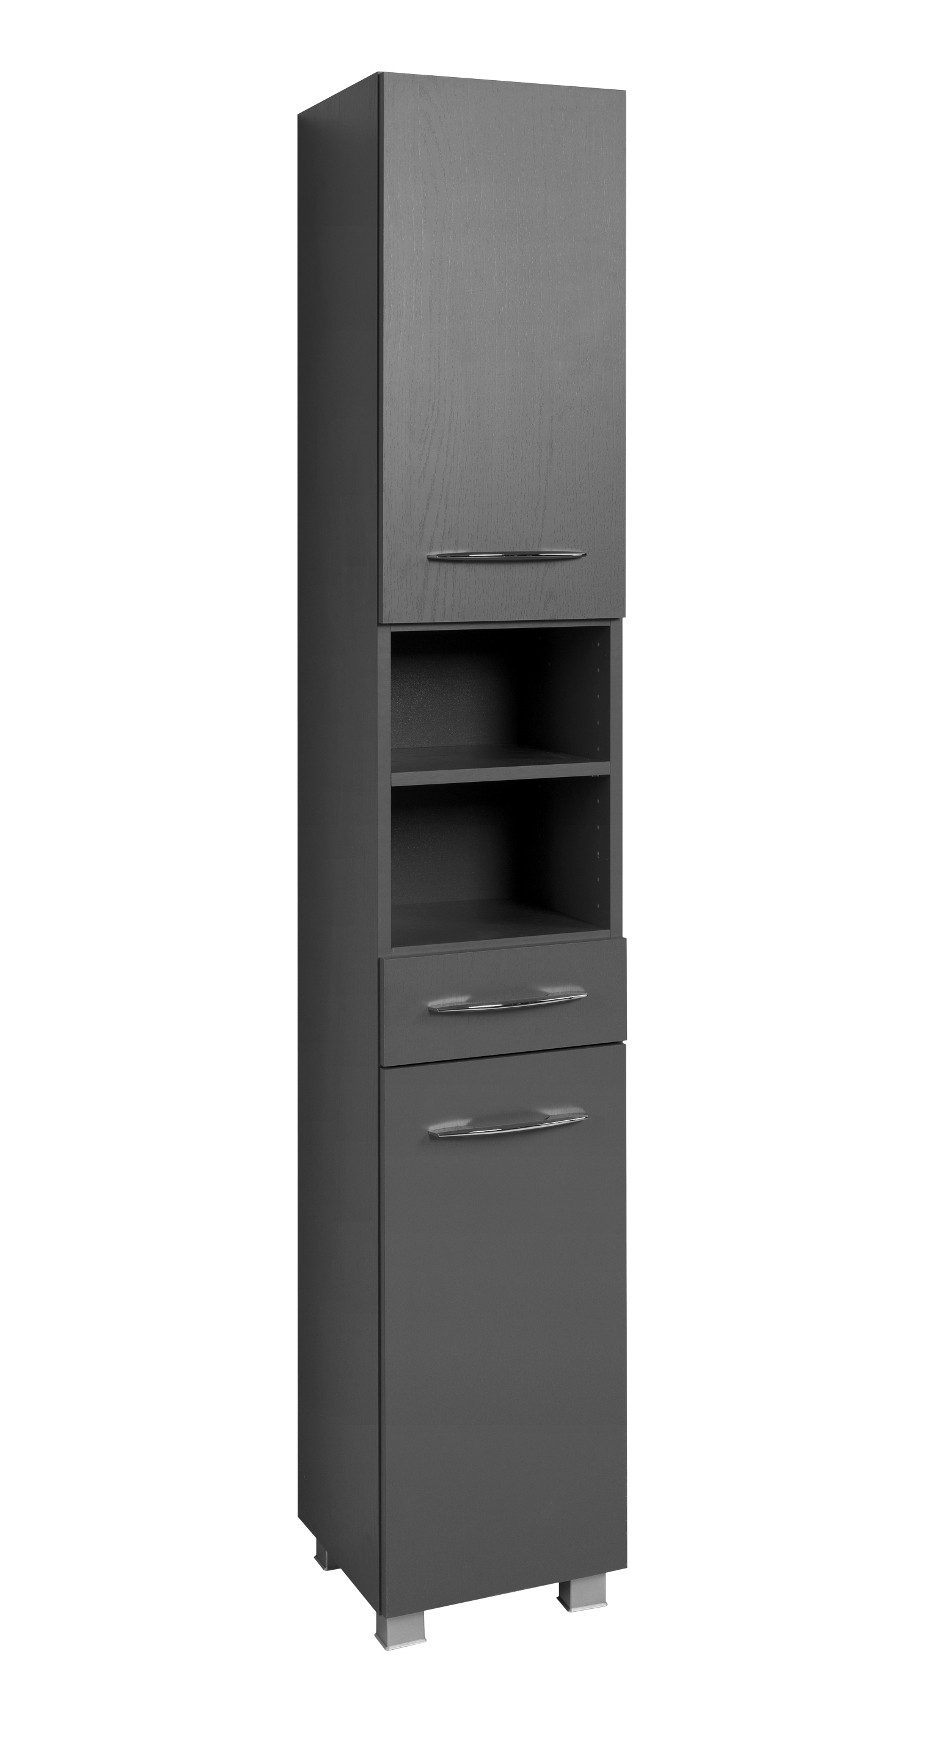 badezimmer hochschrank portofino seitenschrank badschrank 30 cm graphit grau ebay. Black Bedroom Furniture Sets. Home Design Ideas